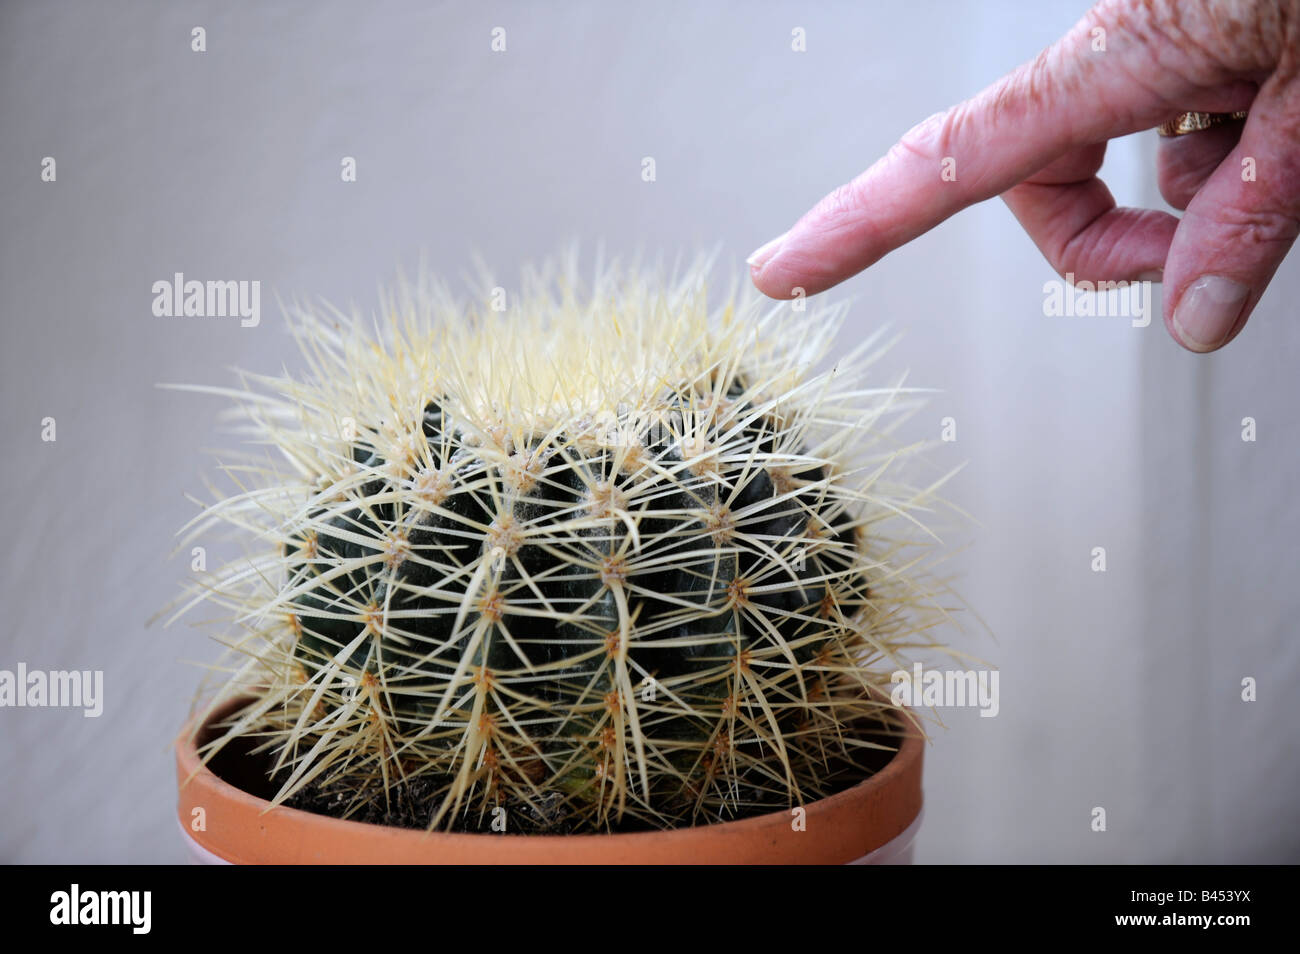 Finger pointing at a cactus plant - Stock Image